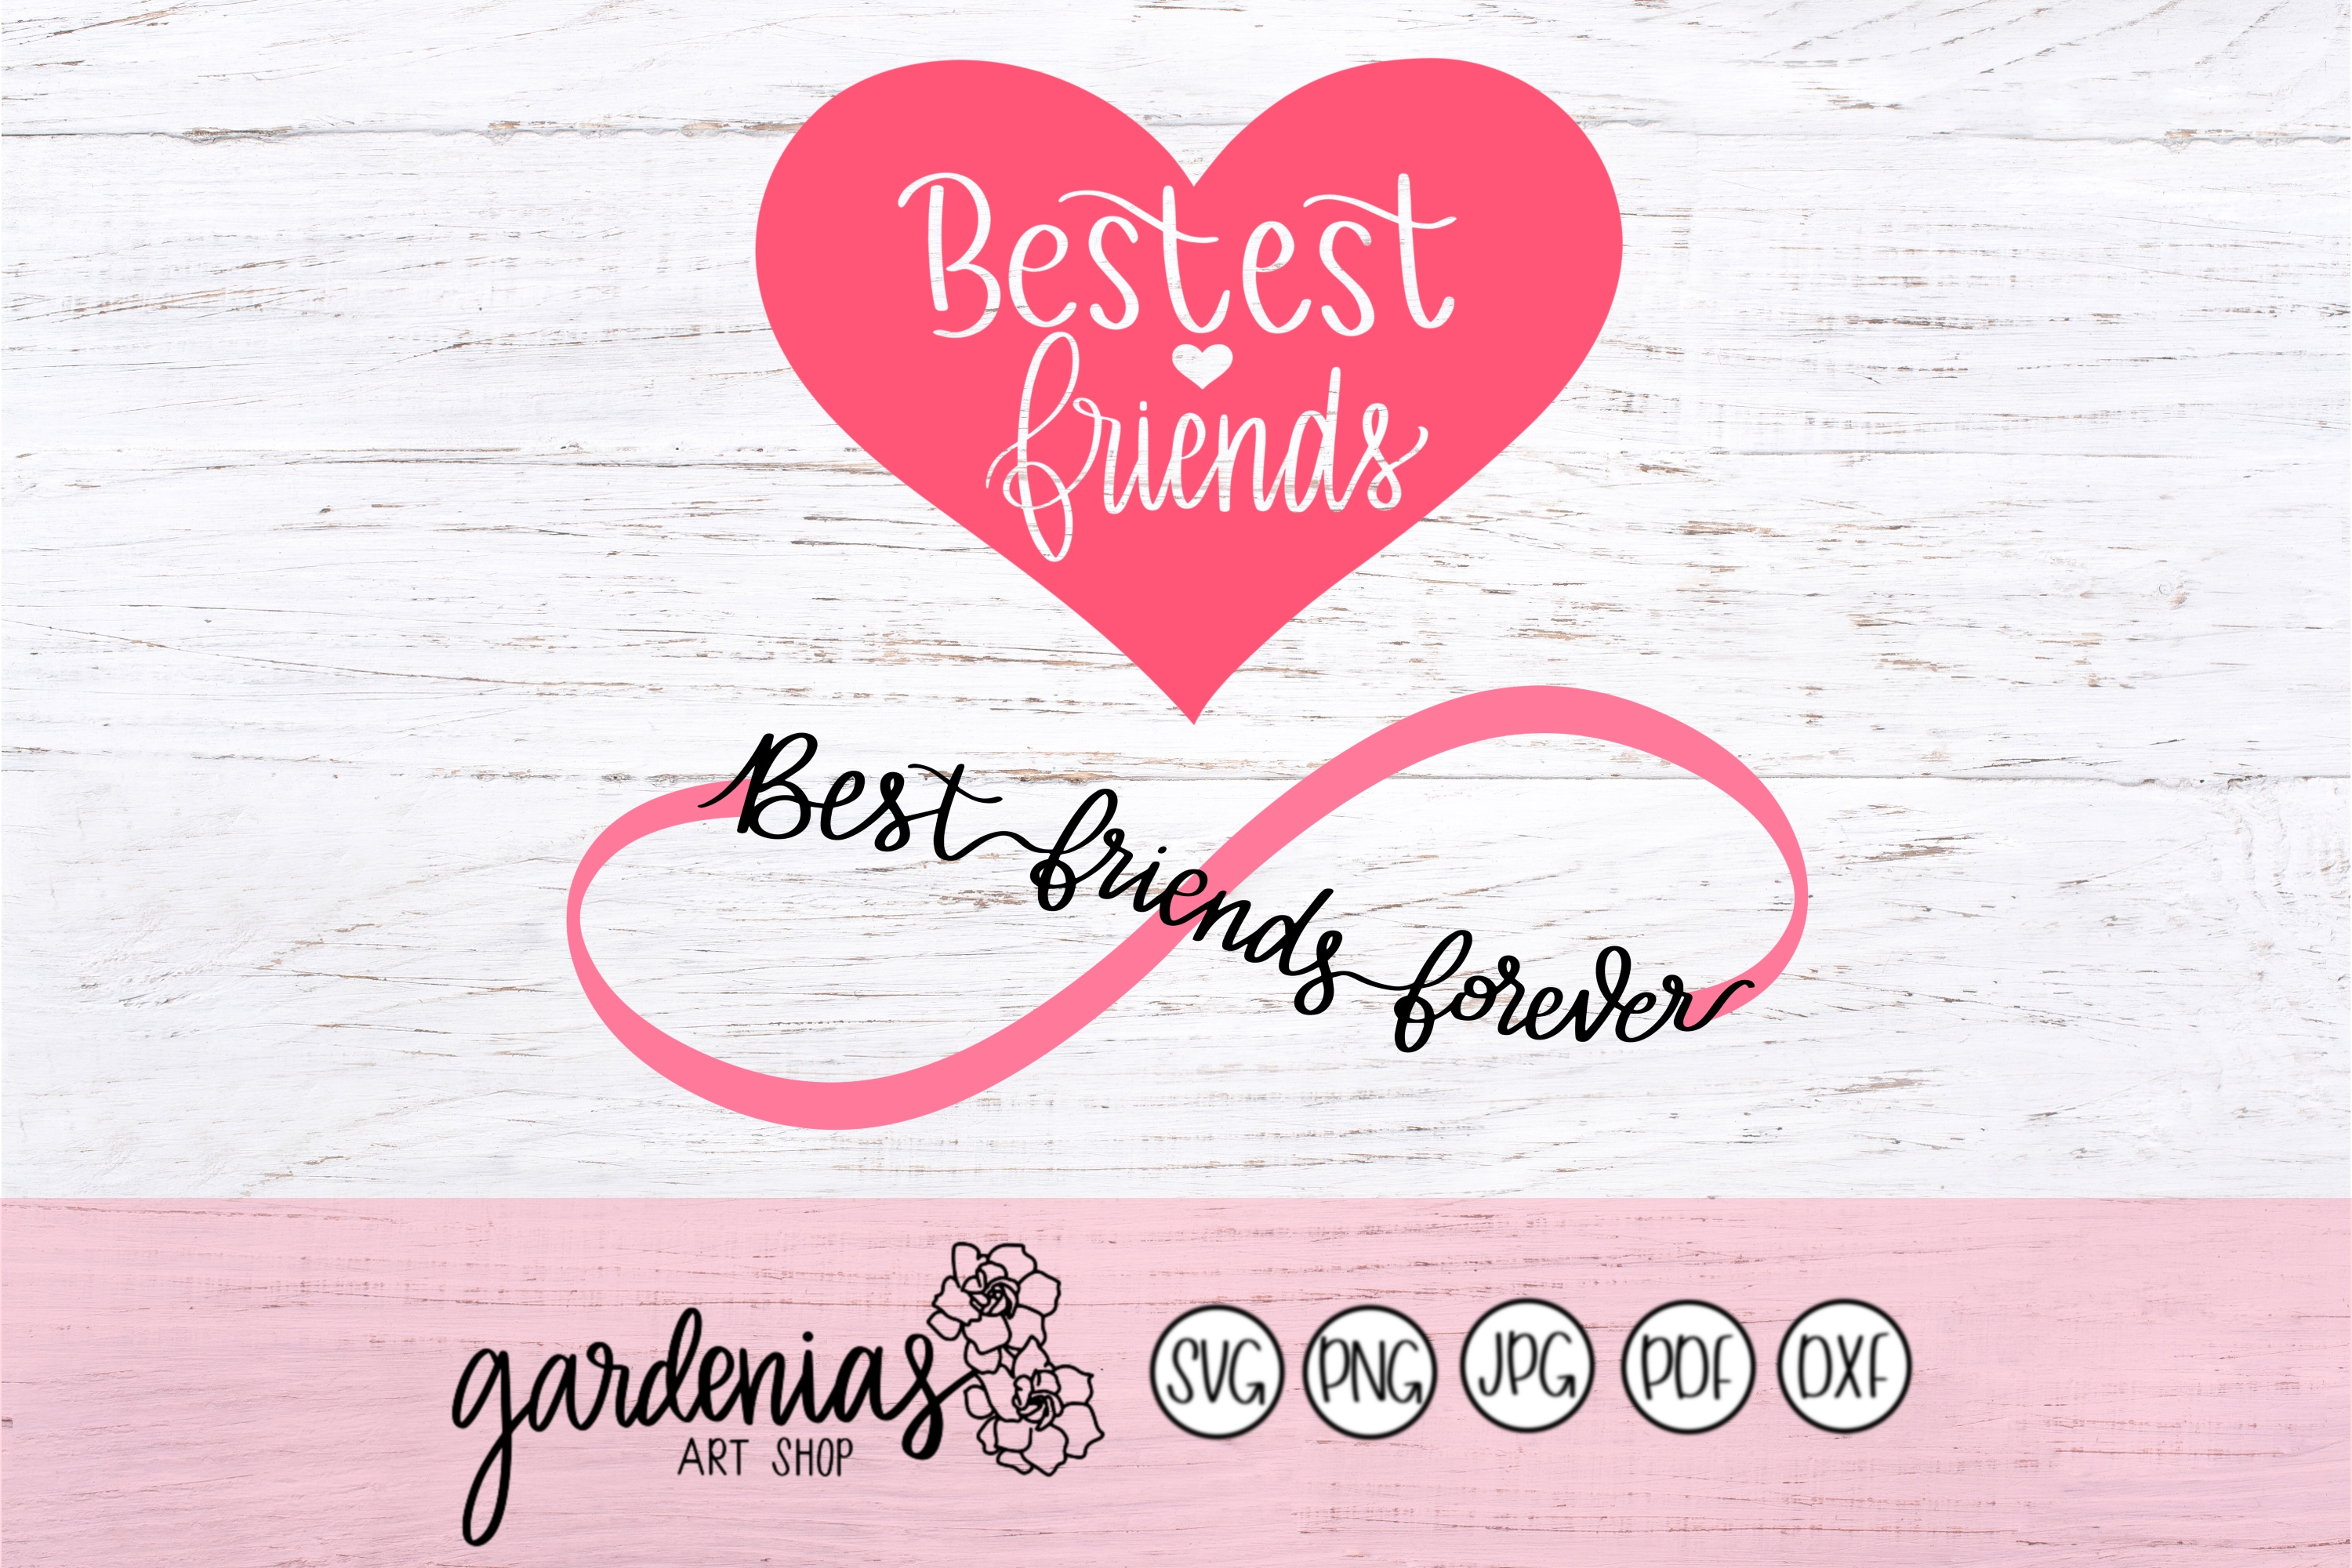 Bestest Friends / Best Friends Forever example image 2